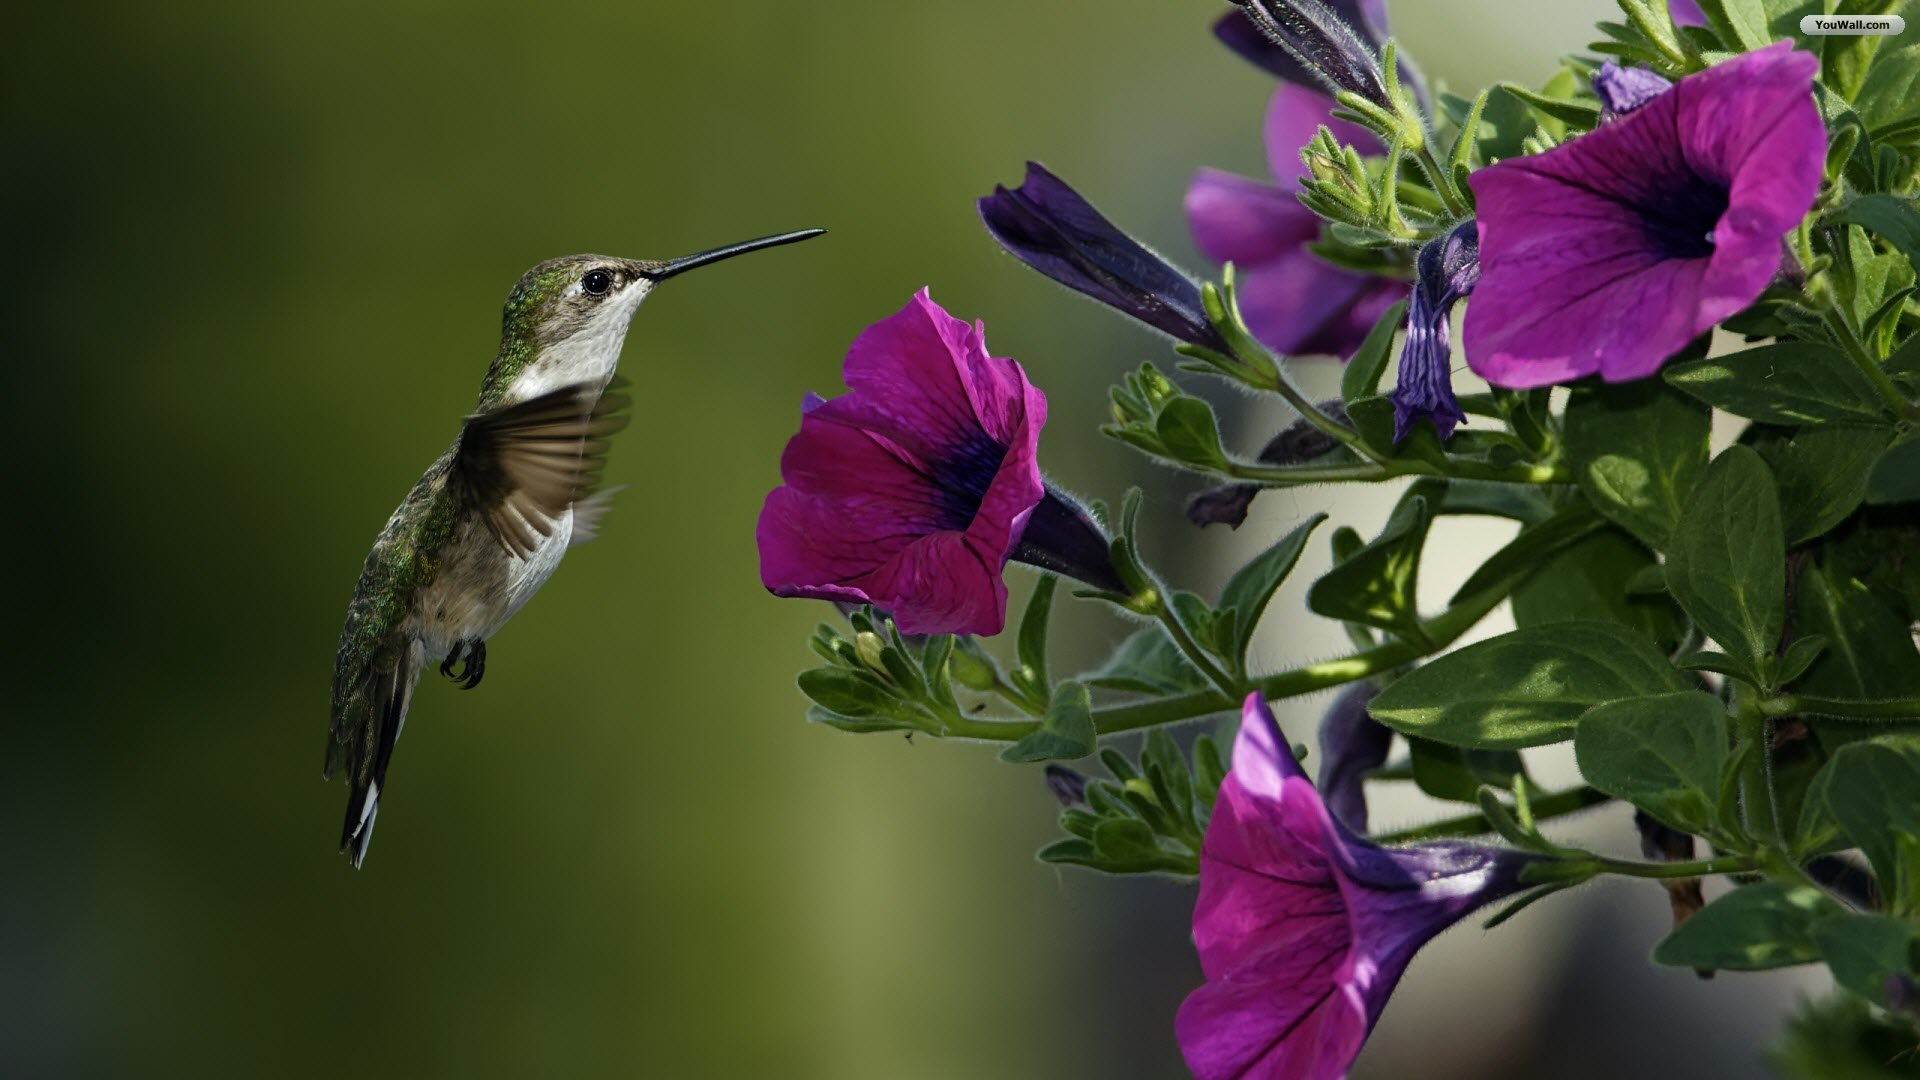 Images Birds Flowers Wallpaper 1920x1080 Full HD Wallpapers 1920x1080